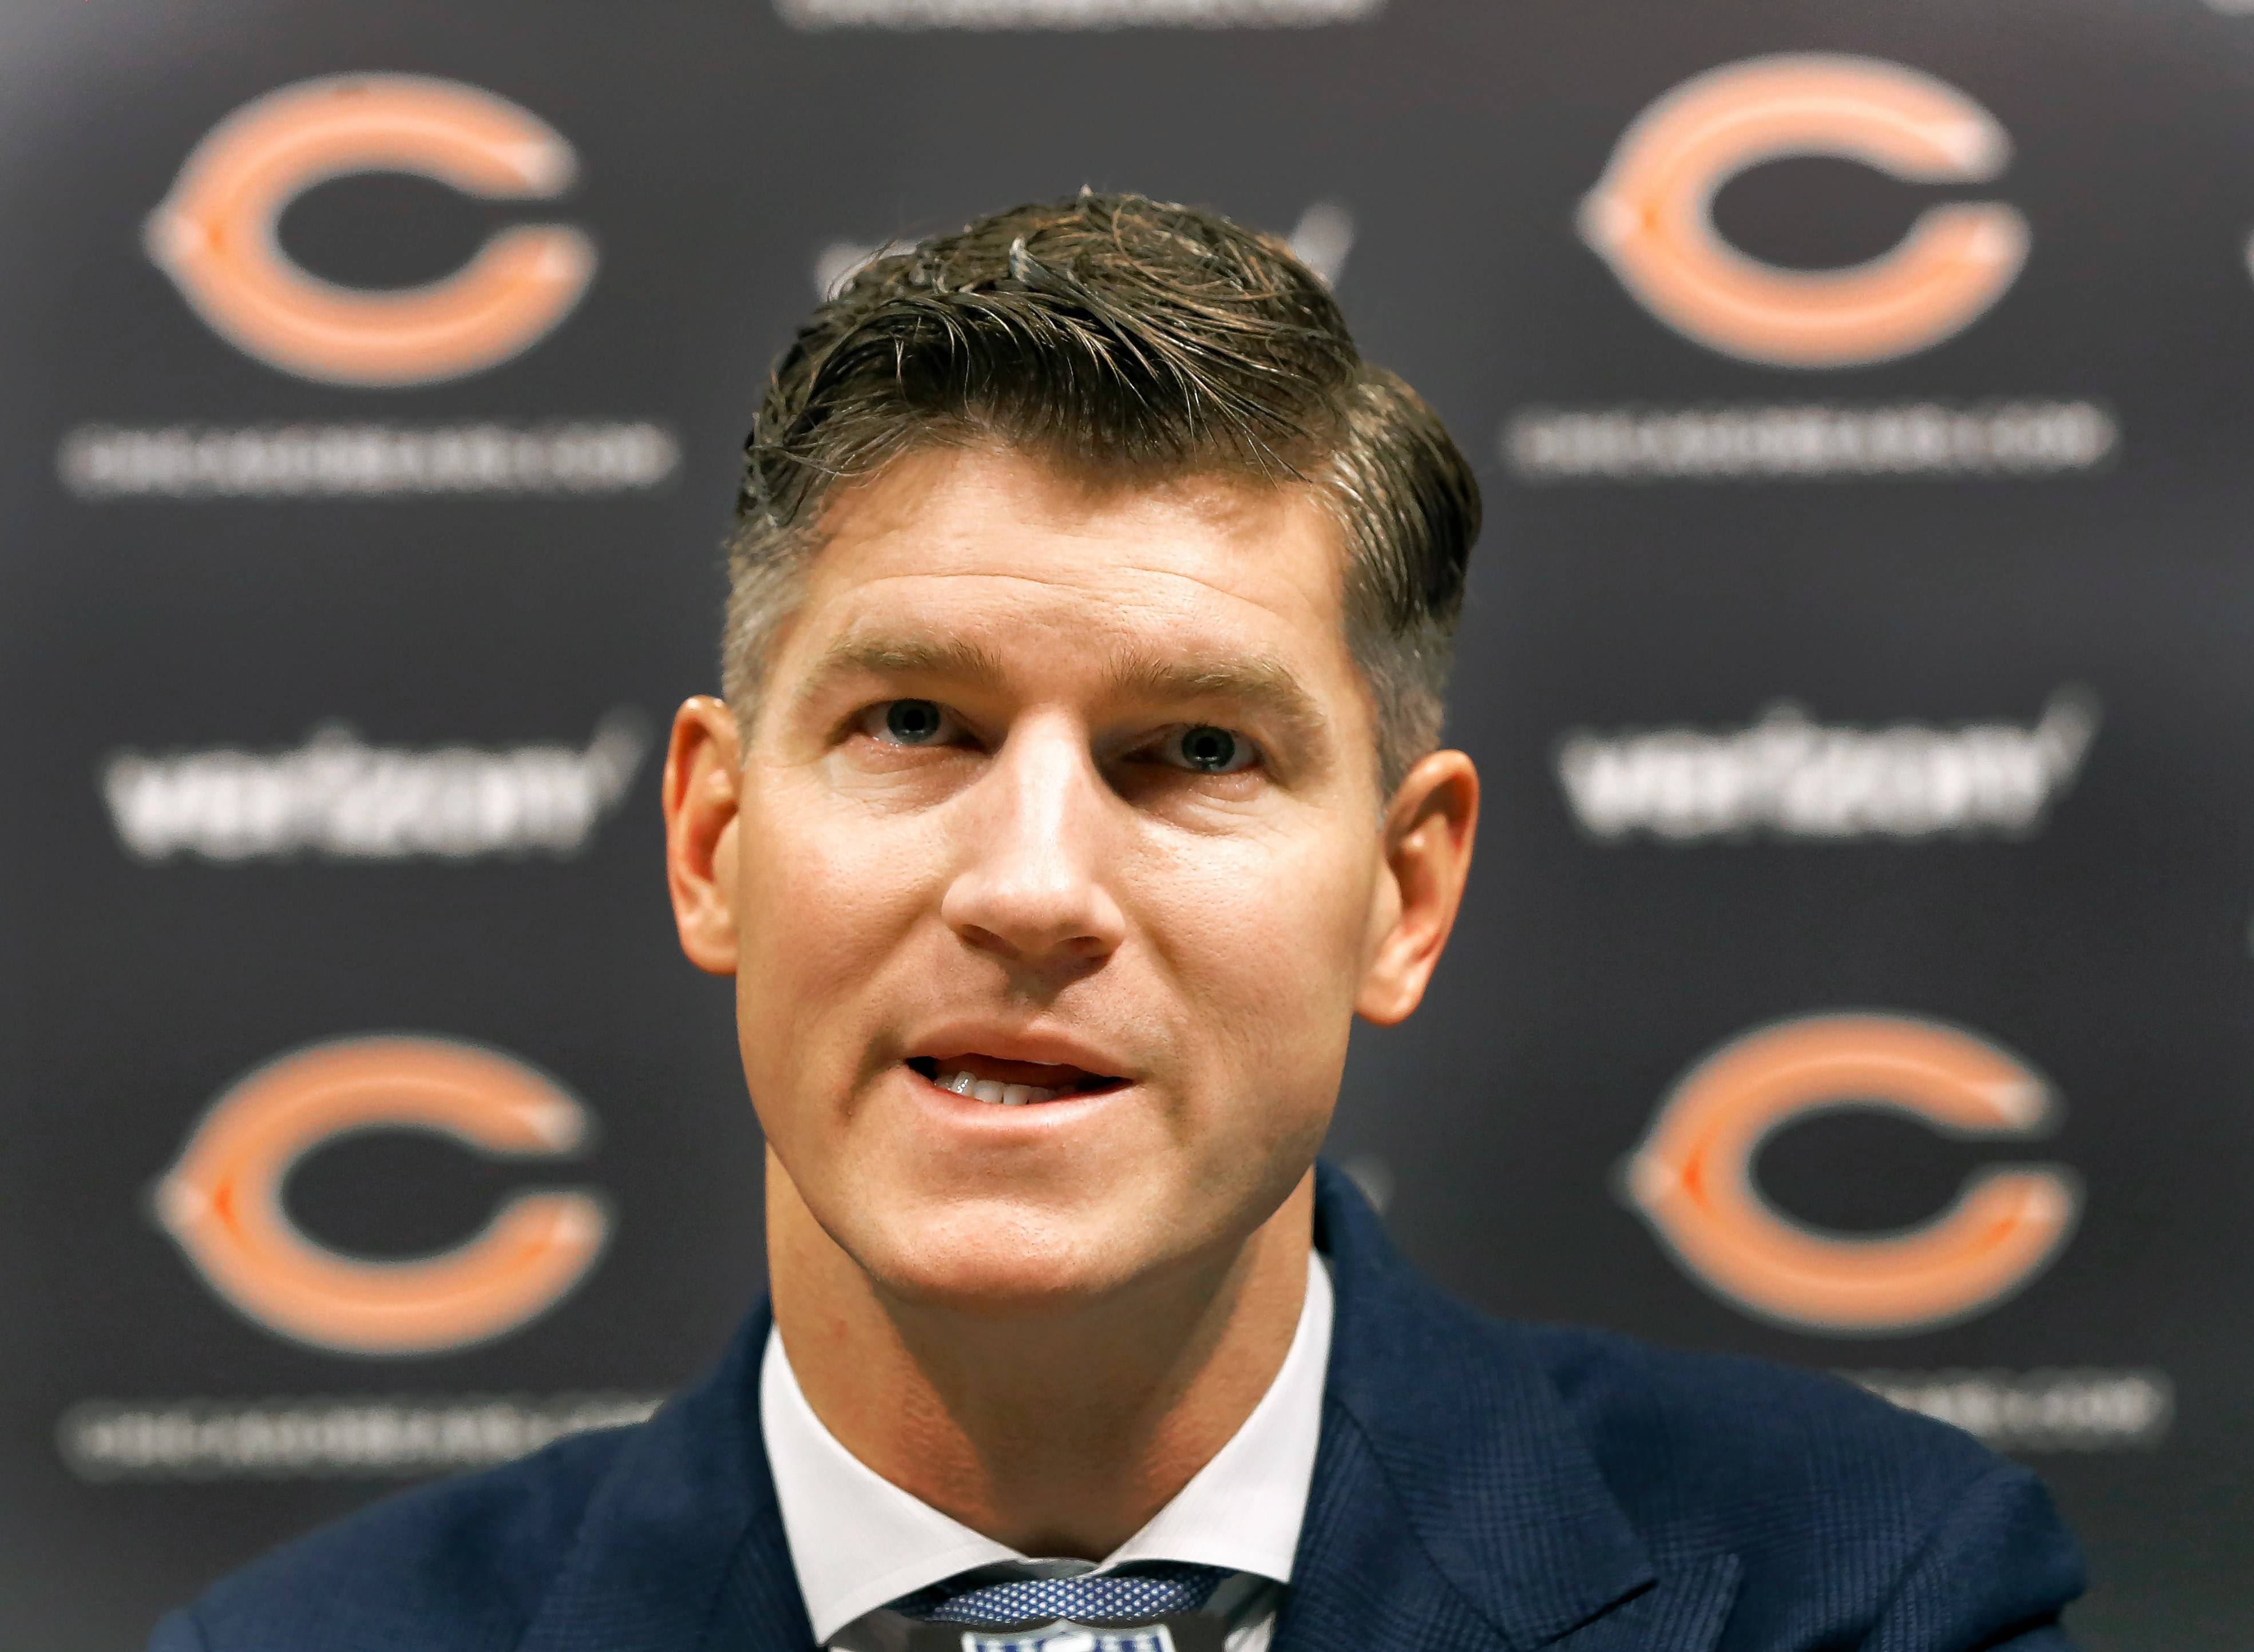 Chicago Bears general manager Ryan Pace said the team is looking for the best coach, regardless of what side of the ball he comes from.